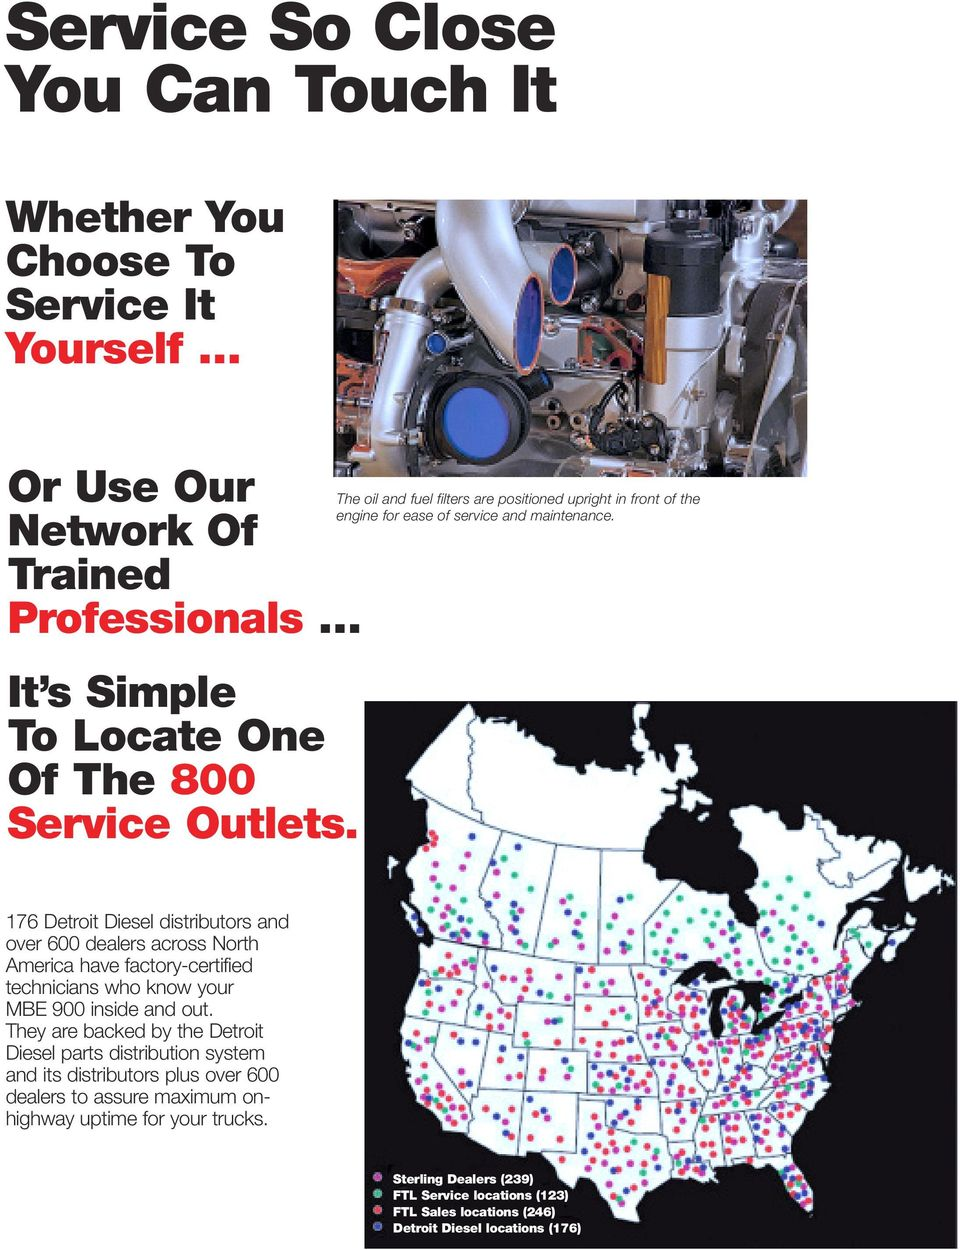 176 Detroit Diesel distributors and over 600 dealers across North America have factory-certified technicians who know your MBE 900 inside and out.